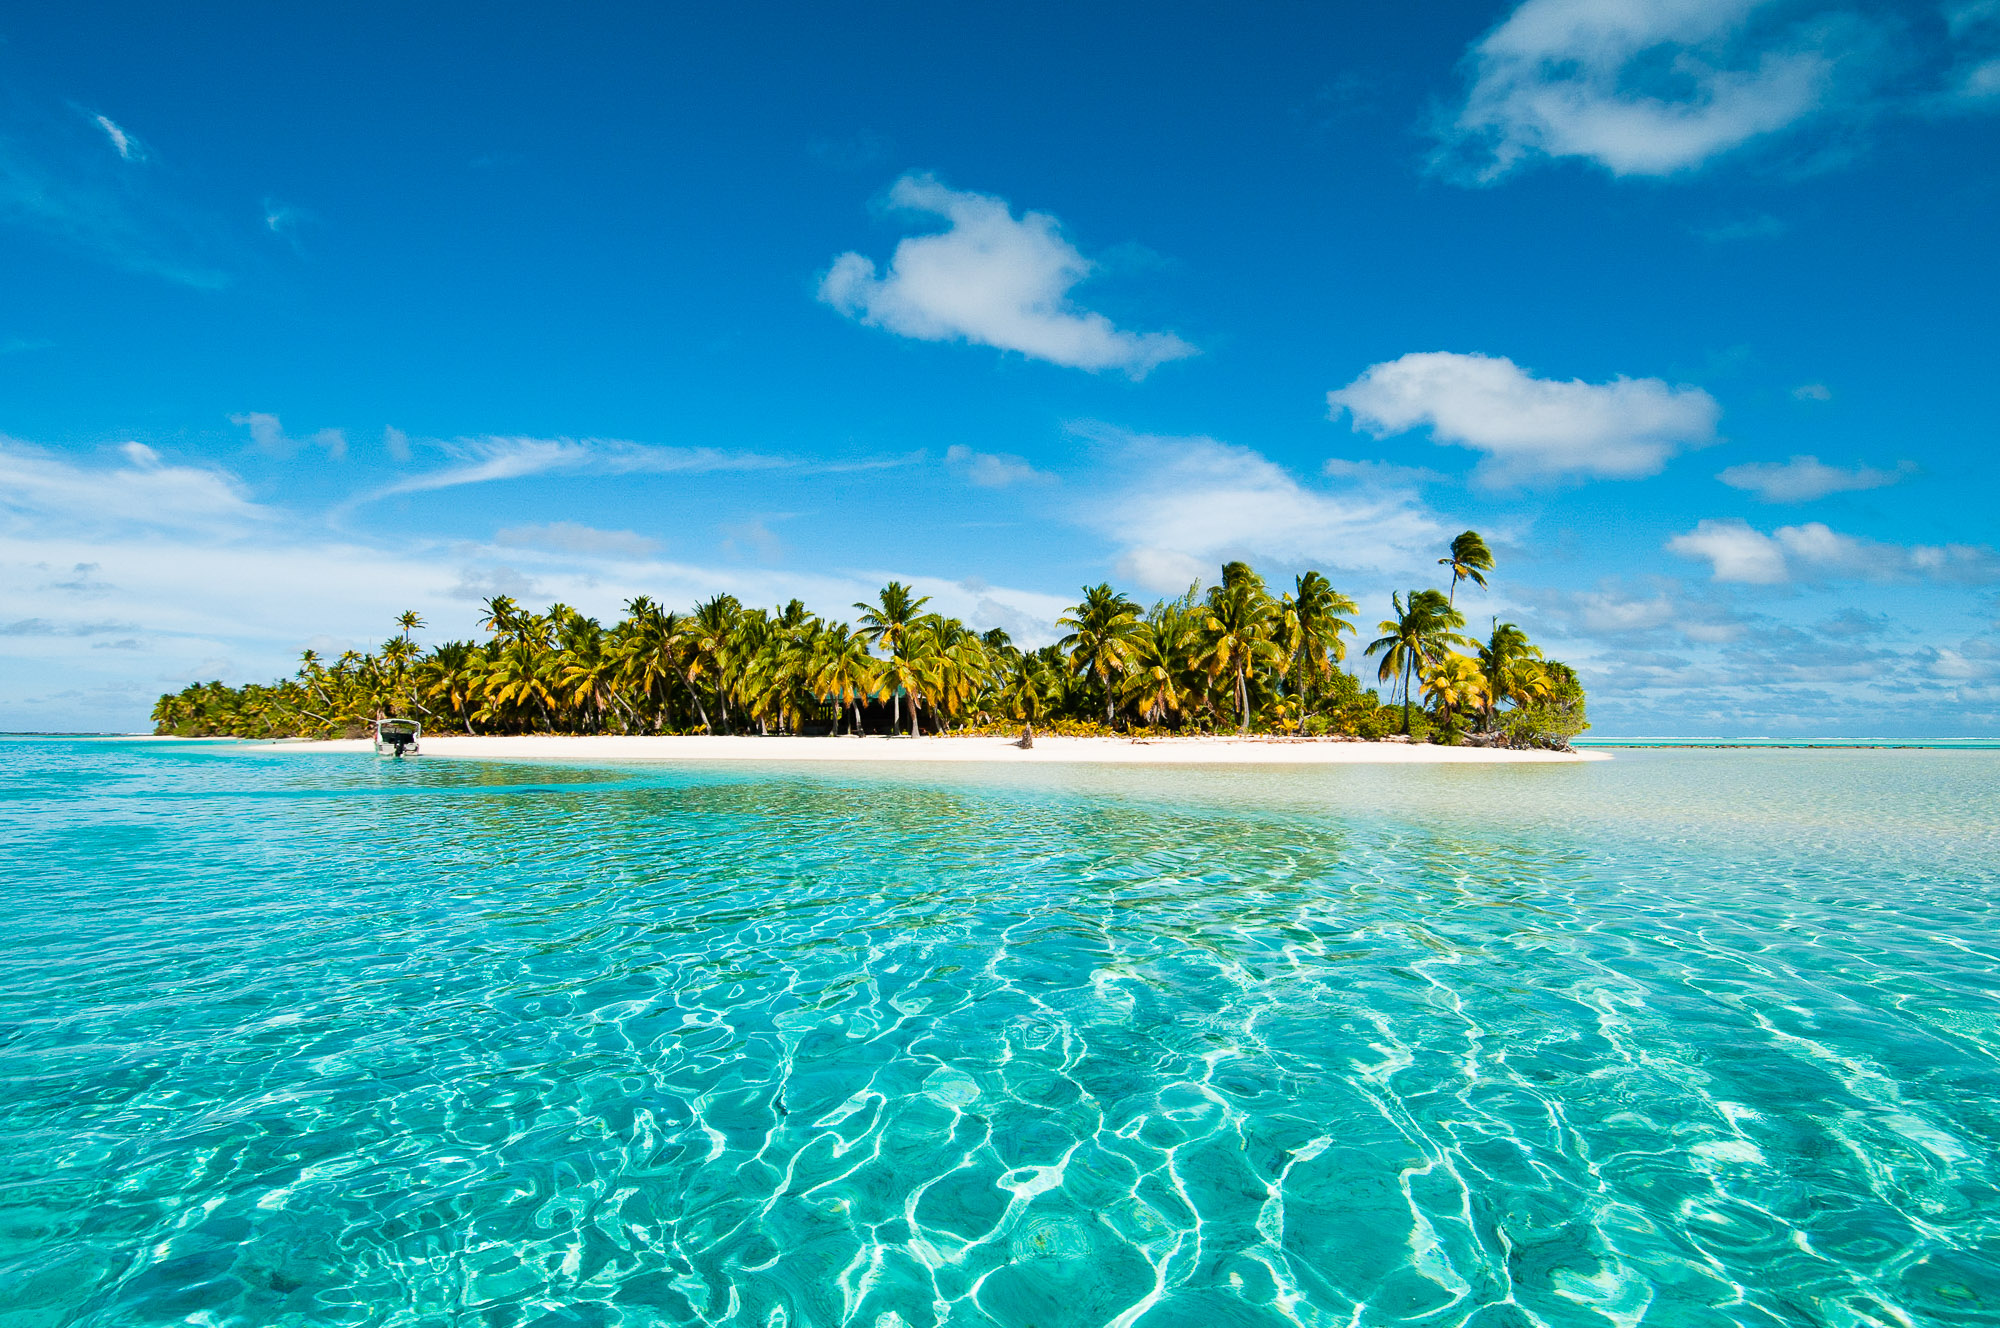 One Foot Island, Aitutaki Lagoon, Cook Islands. © www.thomaspickard.com